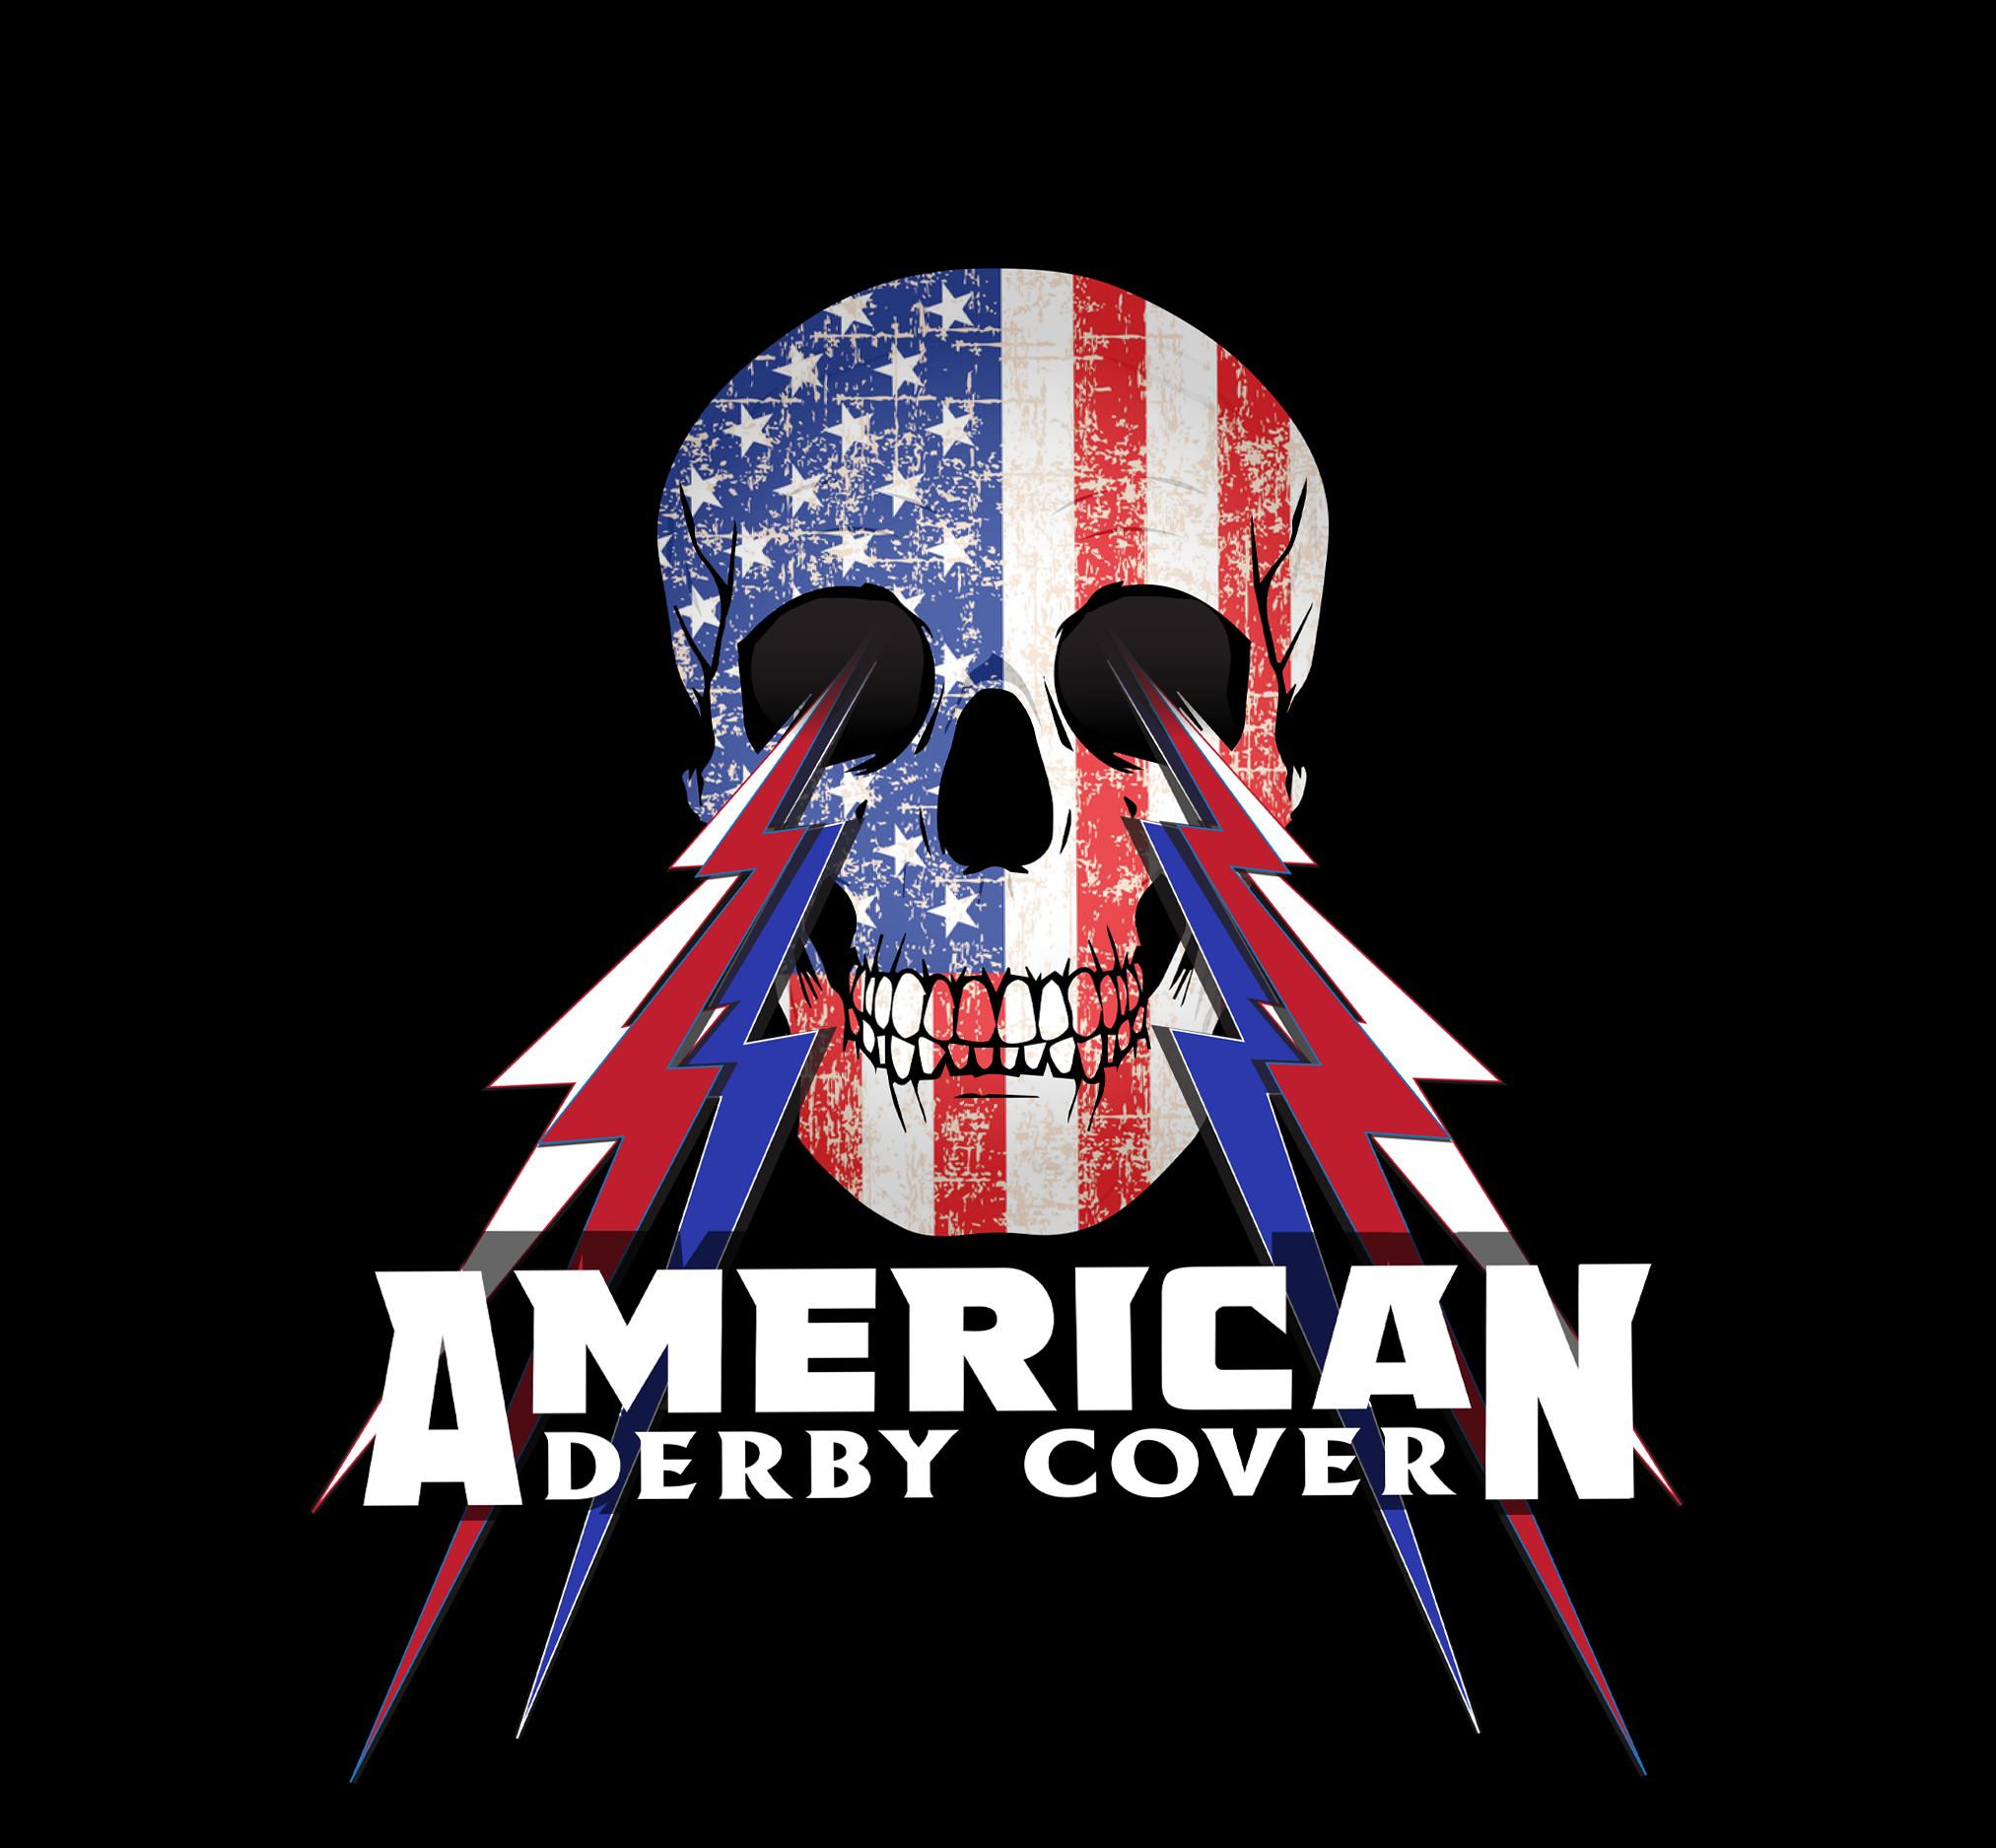 American Derby Cover